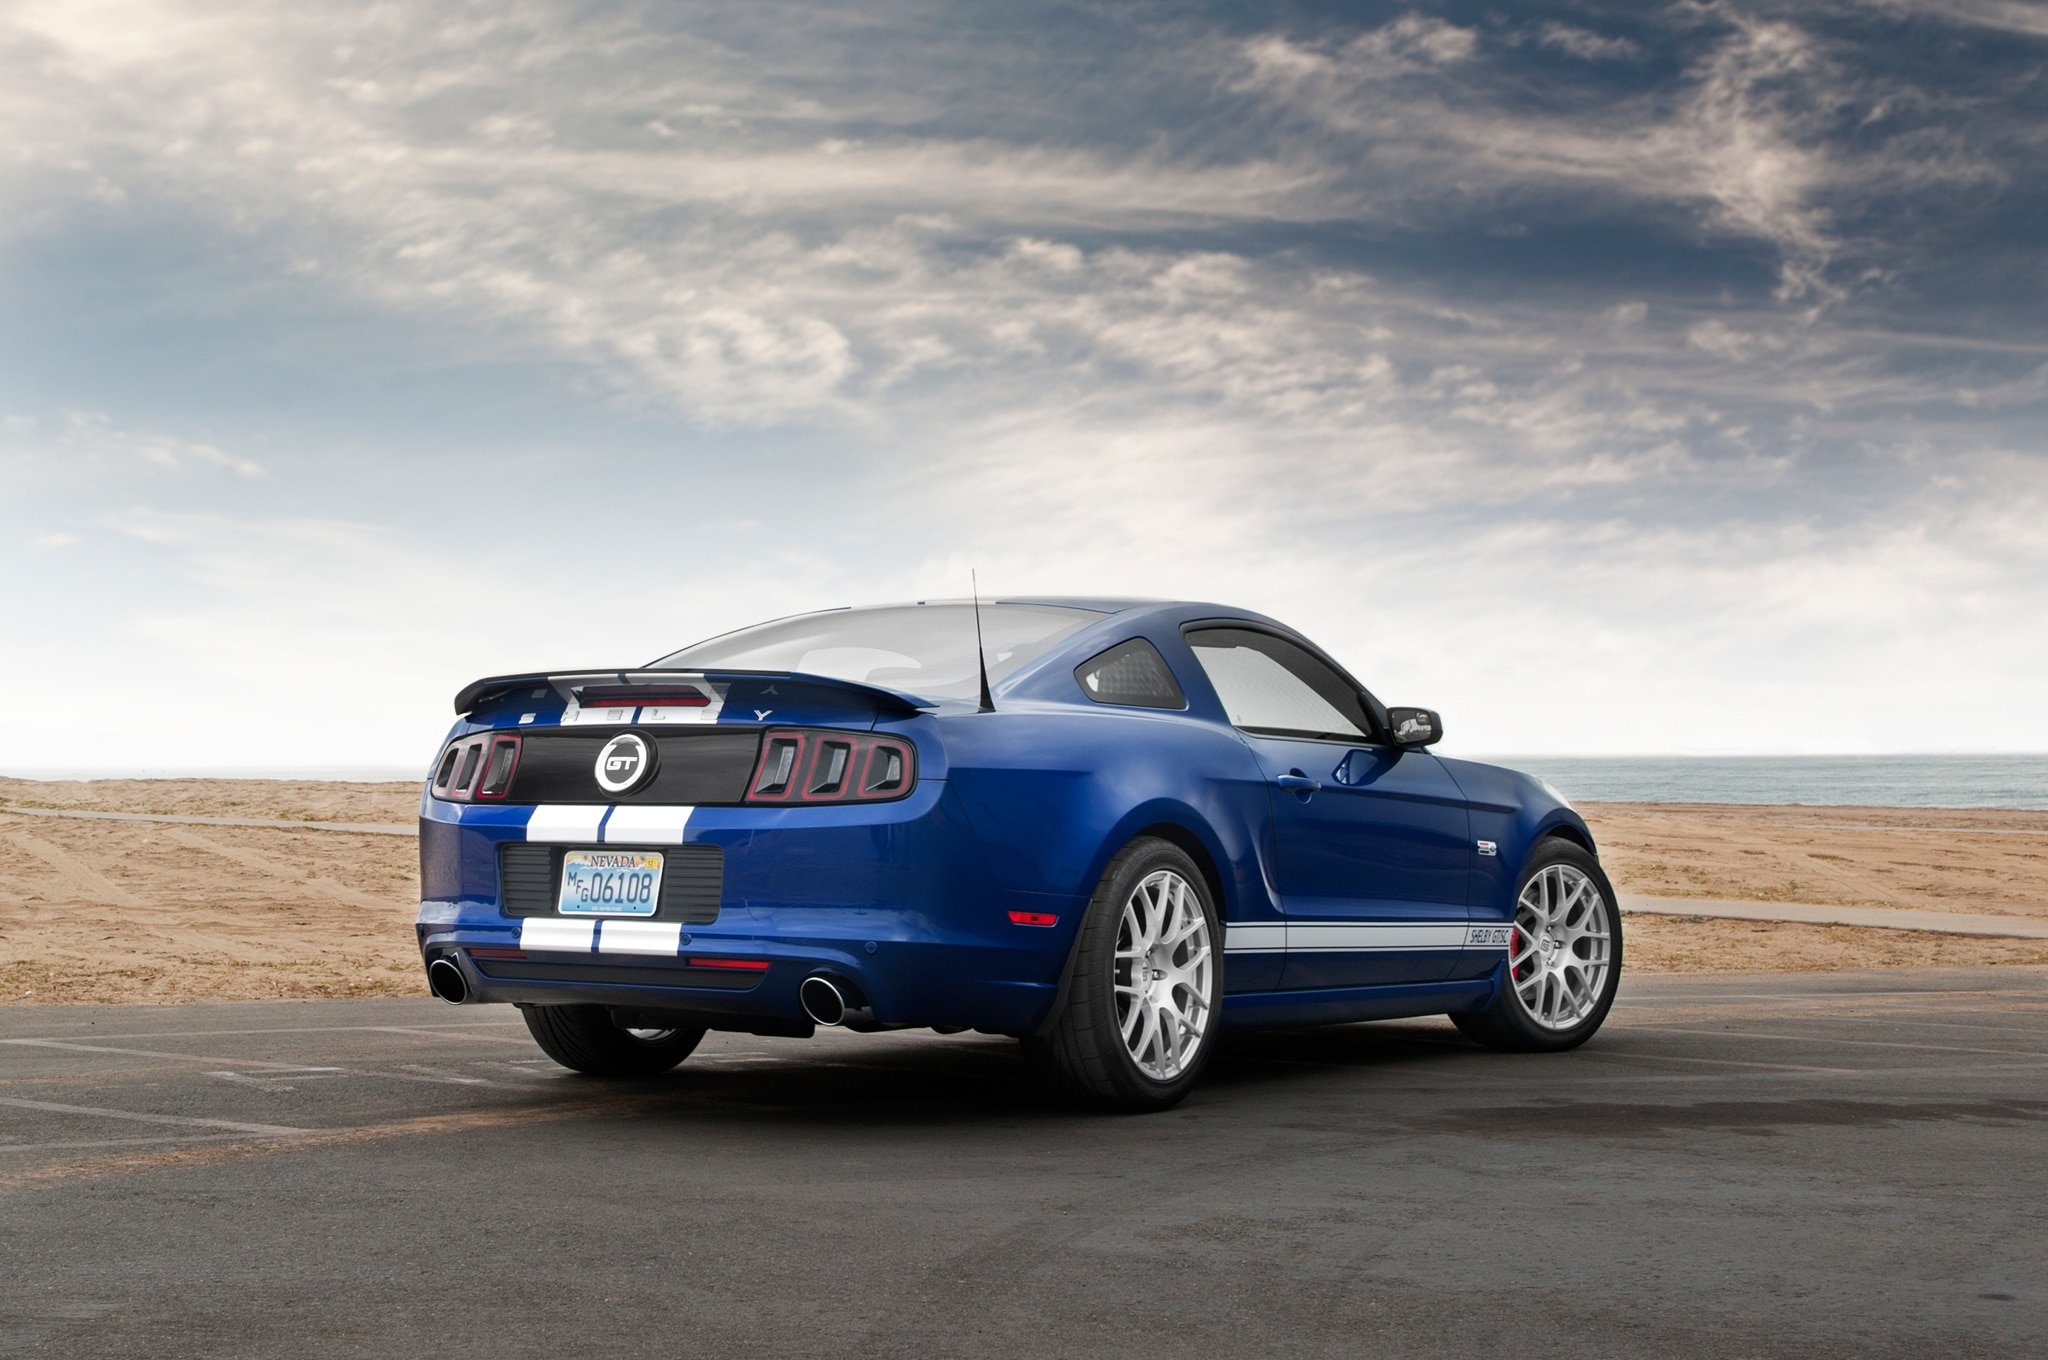 2014 ford mustang cobra jet priced from 97 990. Black Bedroom Furniture Sets. Home Design Ideas